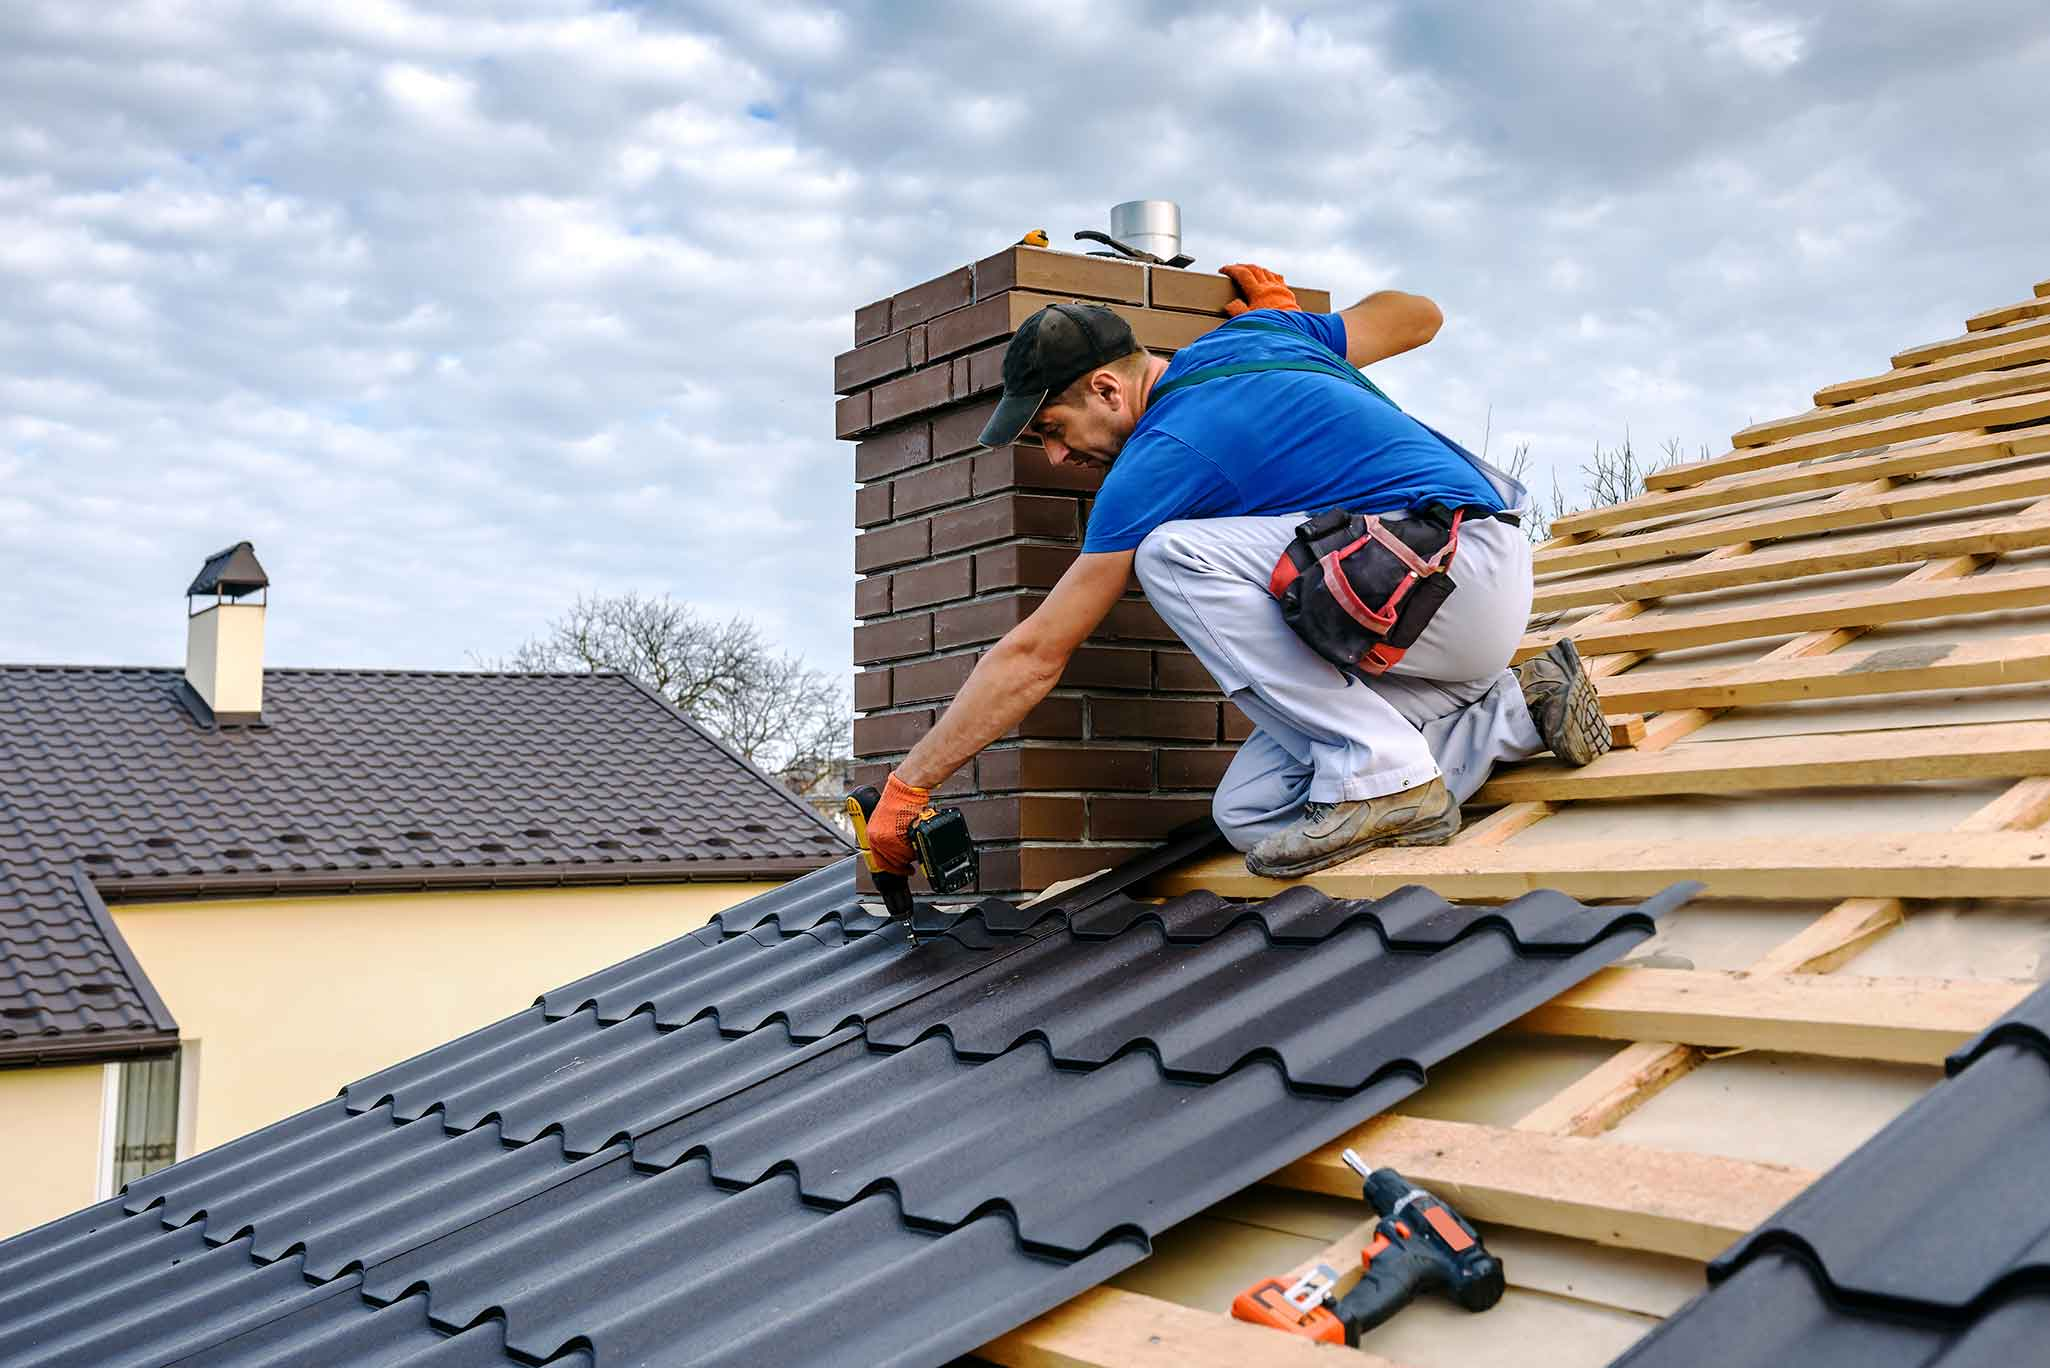 Southline roofing and repair in the Charleston area, gutter and siding installation and repair